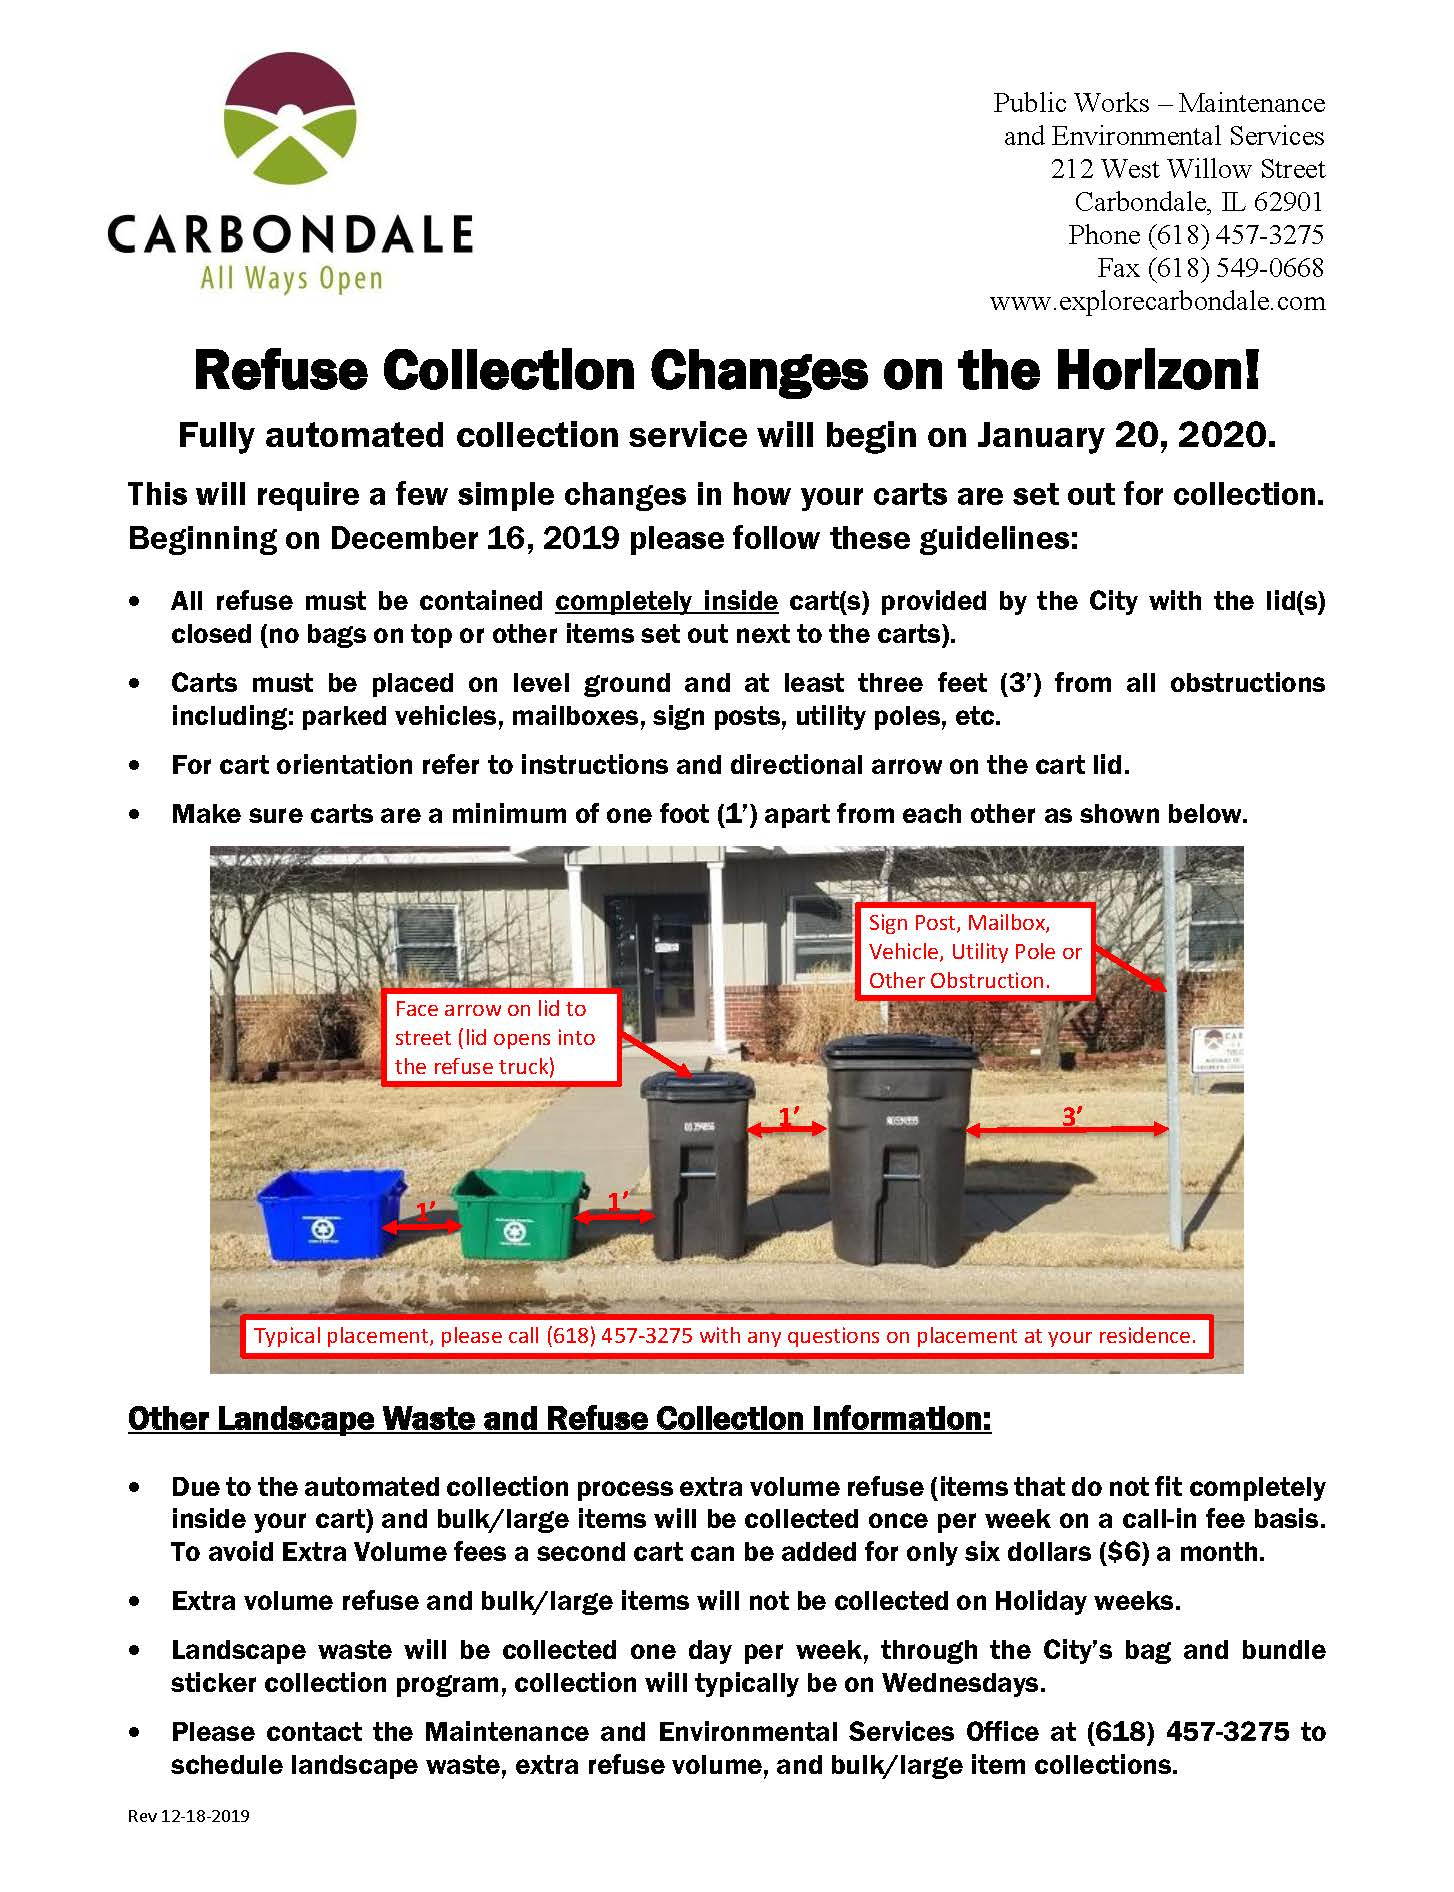 Refuse Changes Flyer Revised 12-18-19